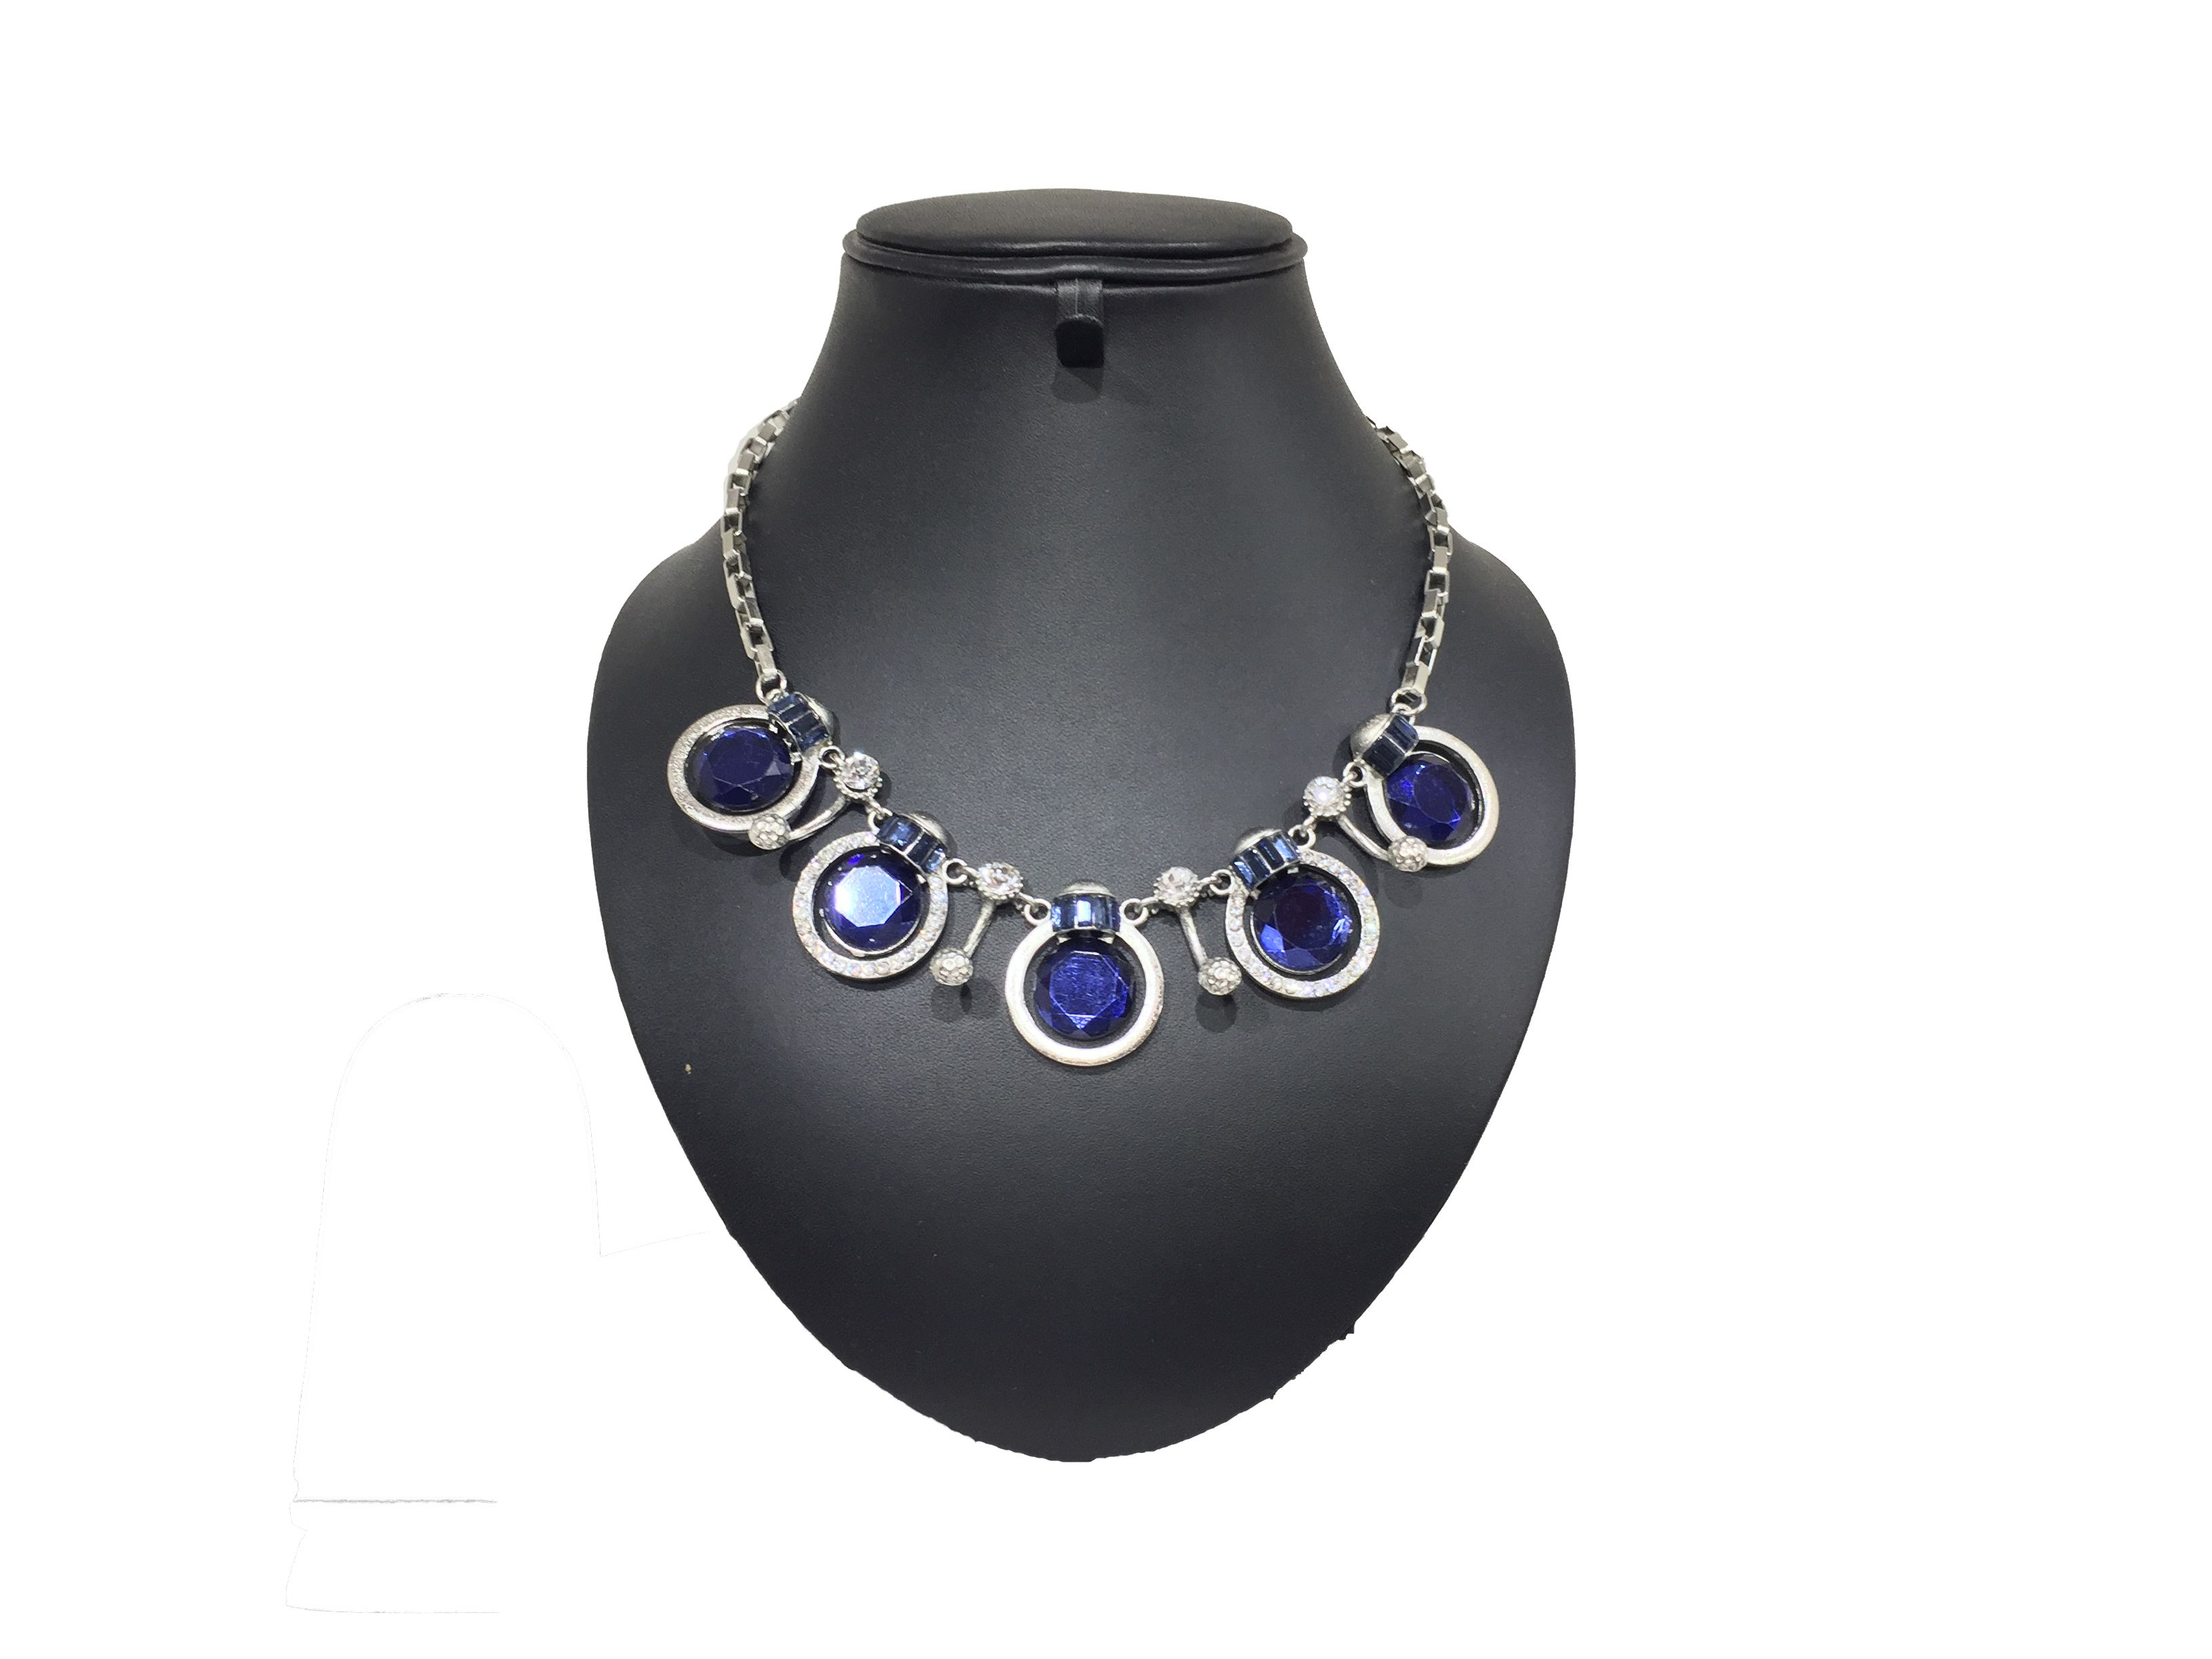 Fashion Necklace Elegant Charm Chunky Statement Women Jewelry